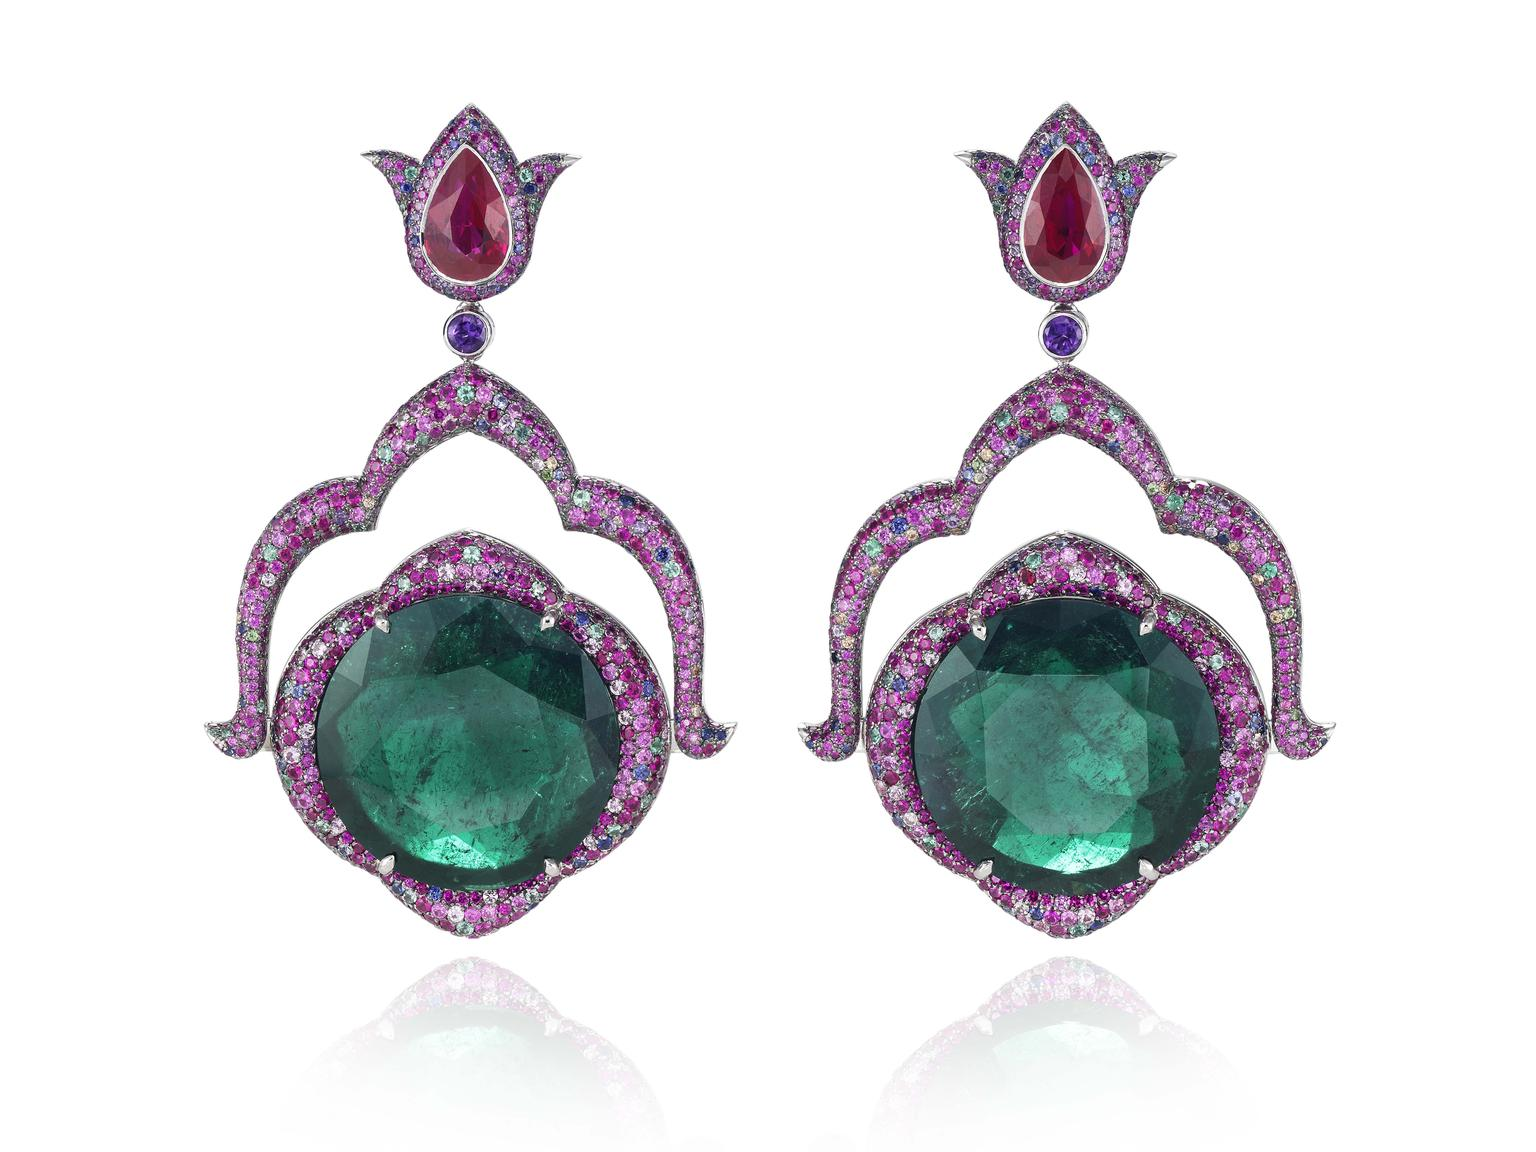 Chopard Red Carpet Collection 2014 earrings in white gold set with round-shaped emeralds of  22.11ct and 21.66ct respectively, pear-shaped rubies, multi-coloured sapphires, rubies, emeralds, amethysts and tsavorites